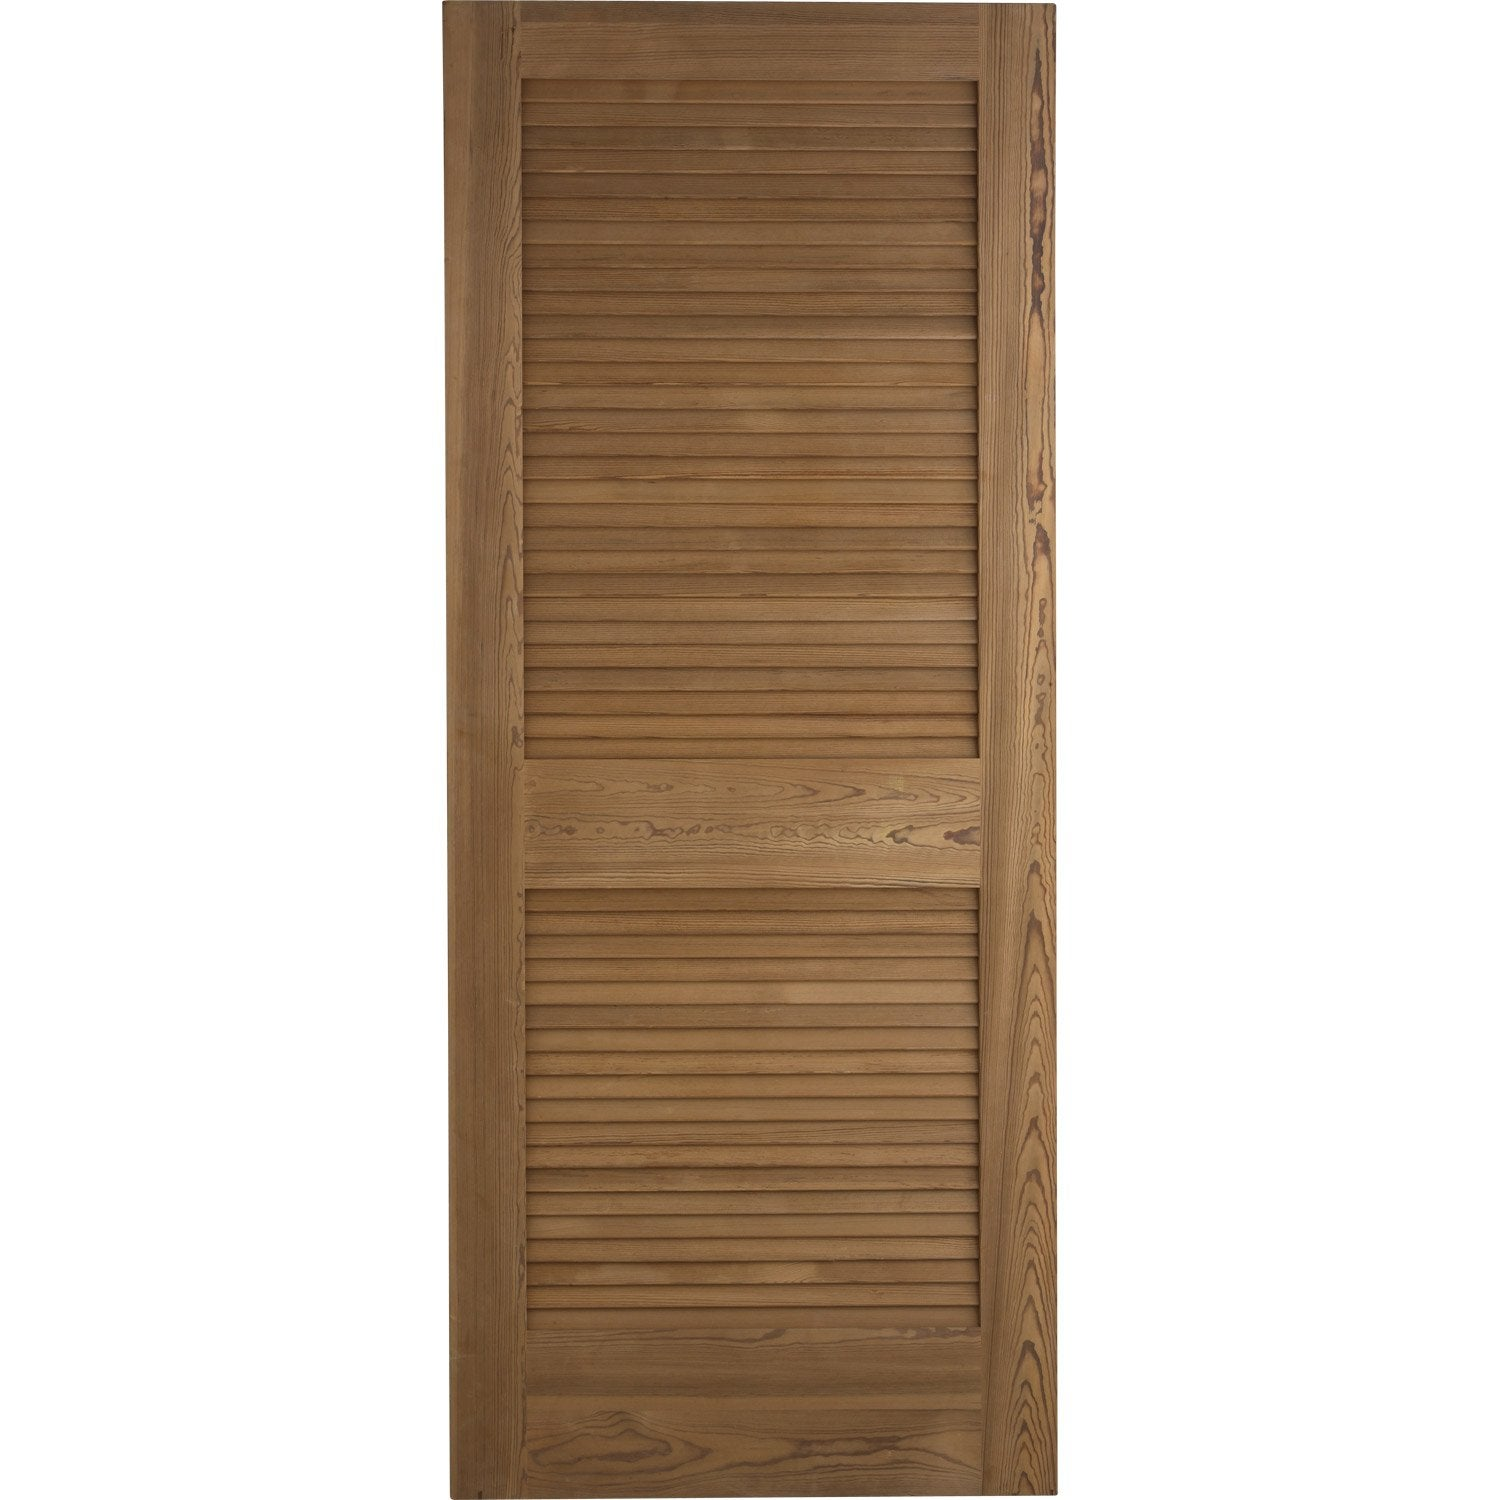 Porte coulissante pin plaqu marron java artens 204 x 73 for Porte interieur 73 cm